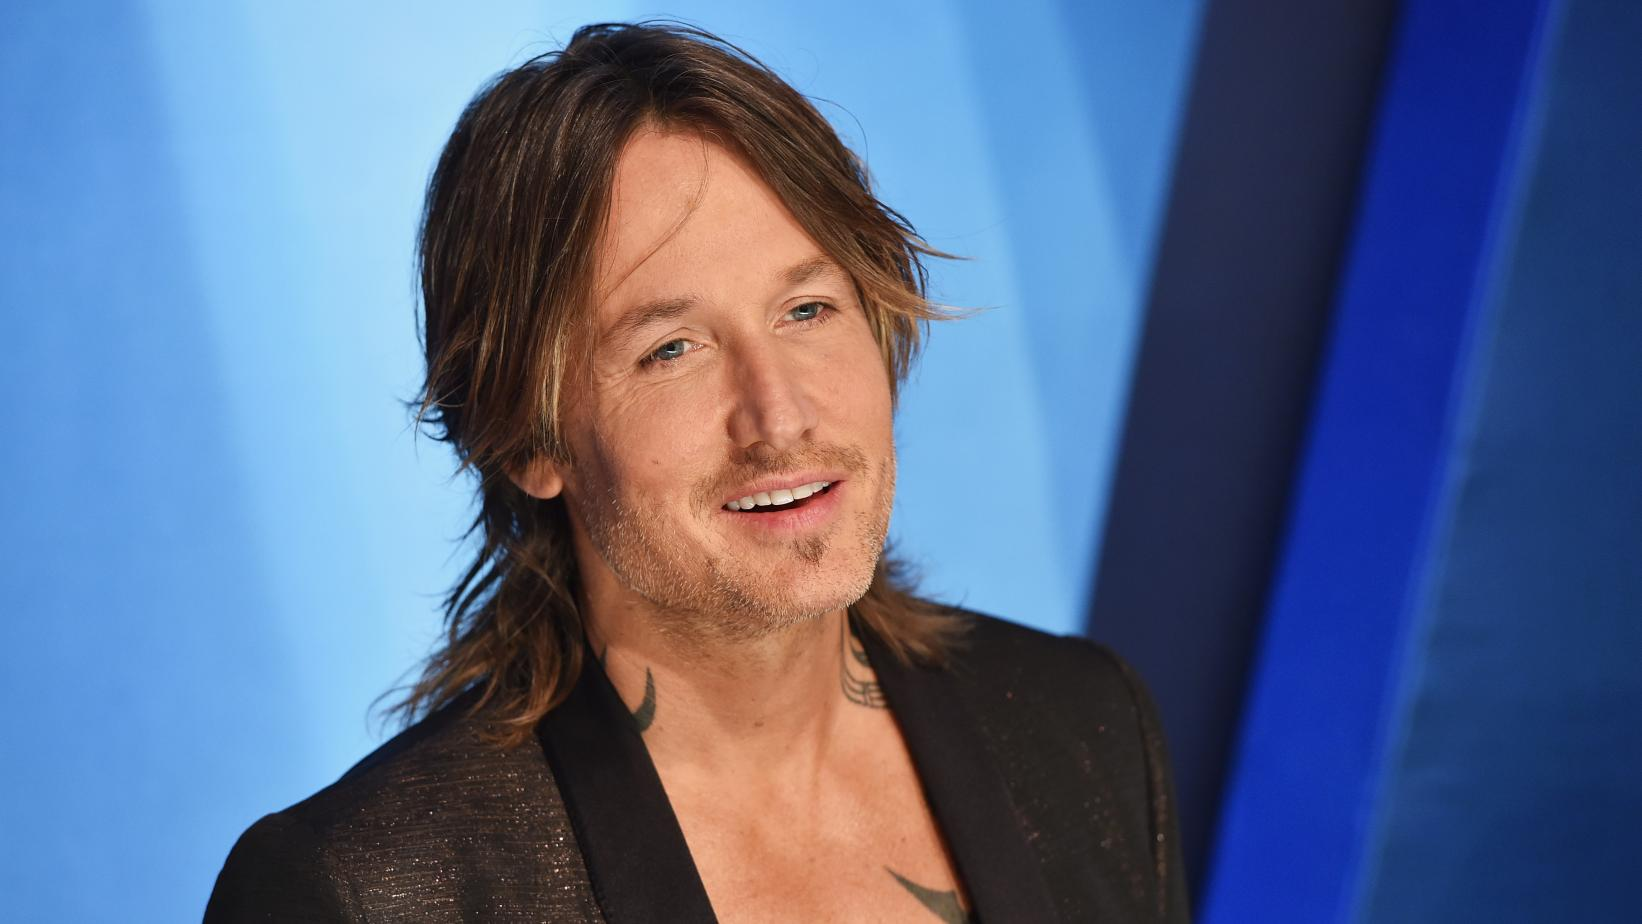 Keith Urban photographed in 2017